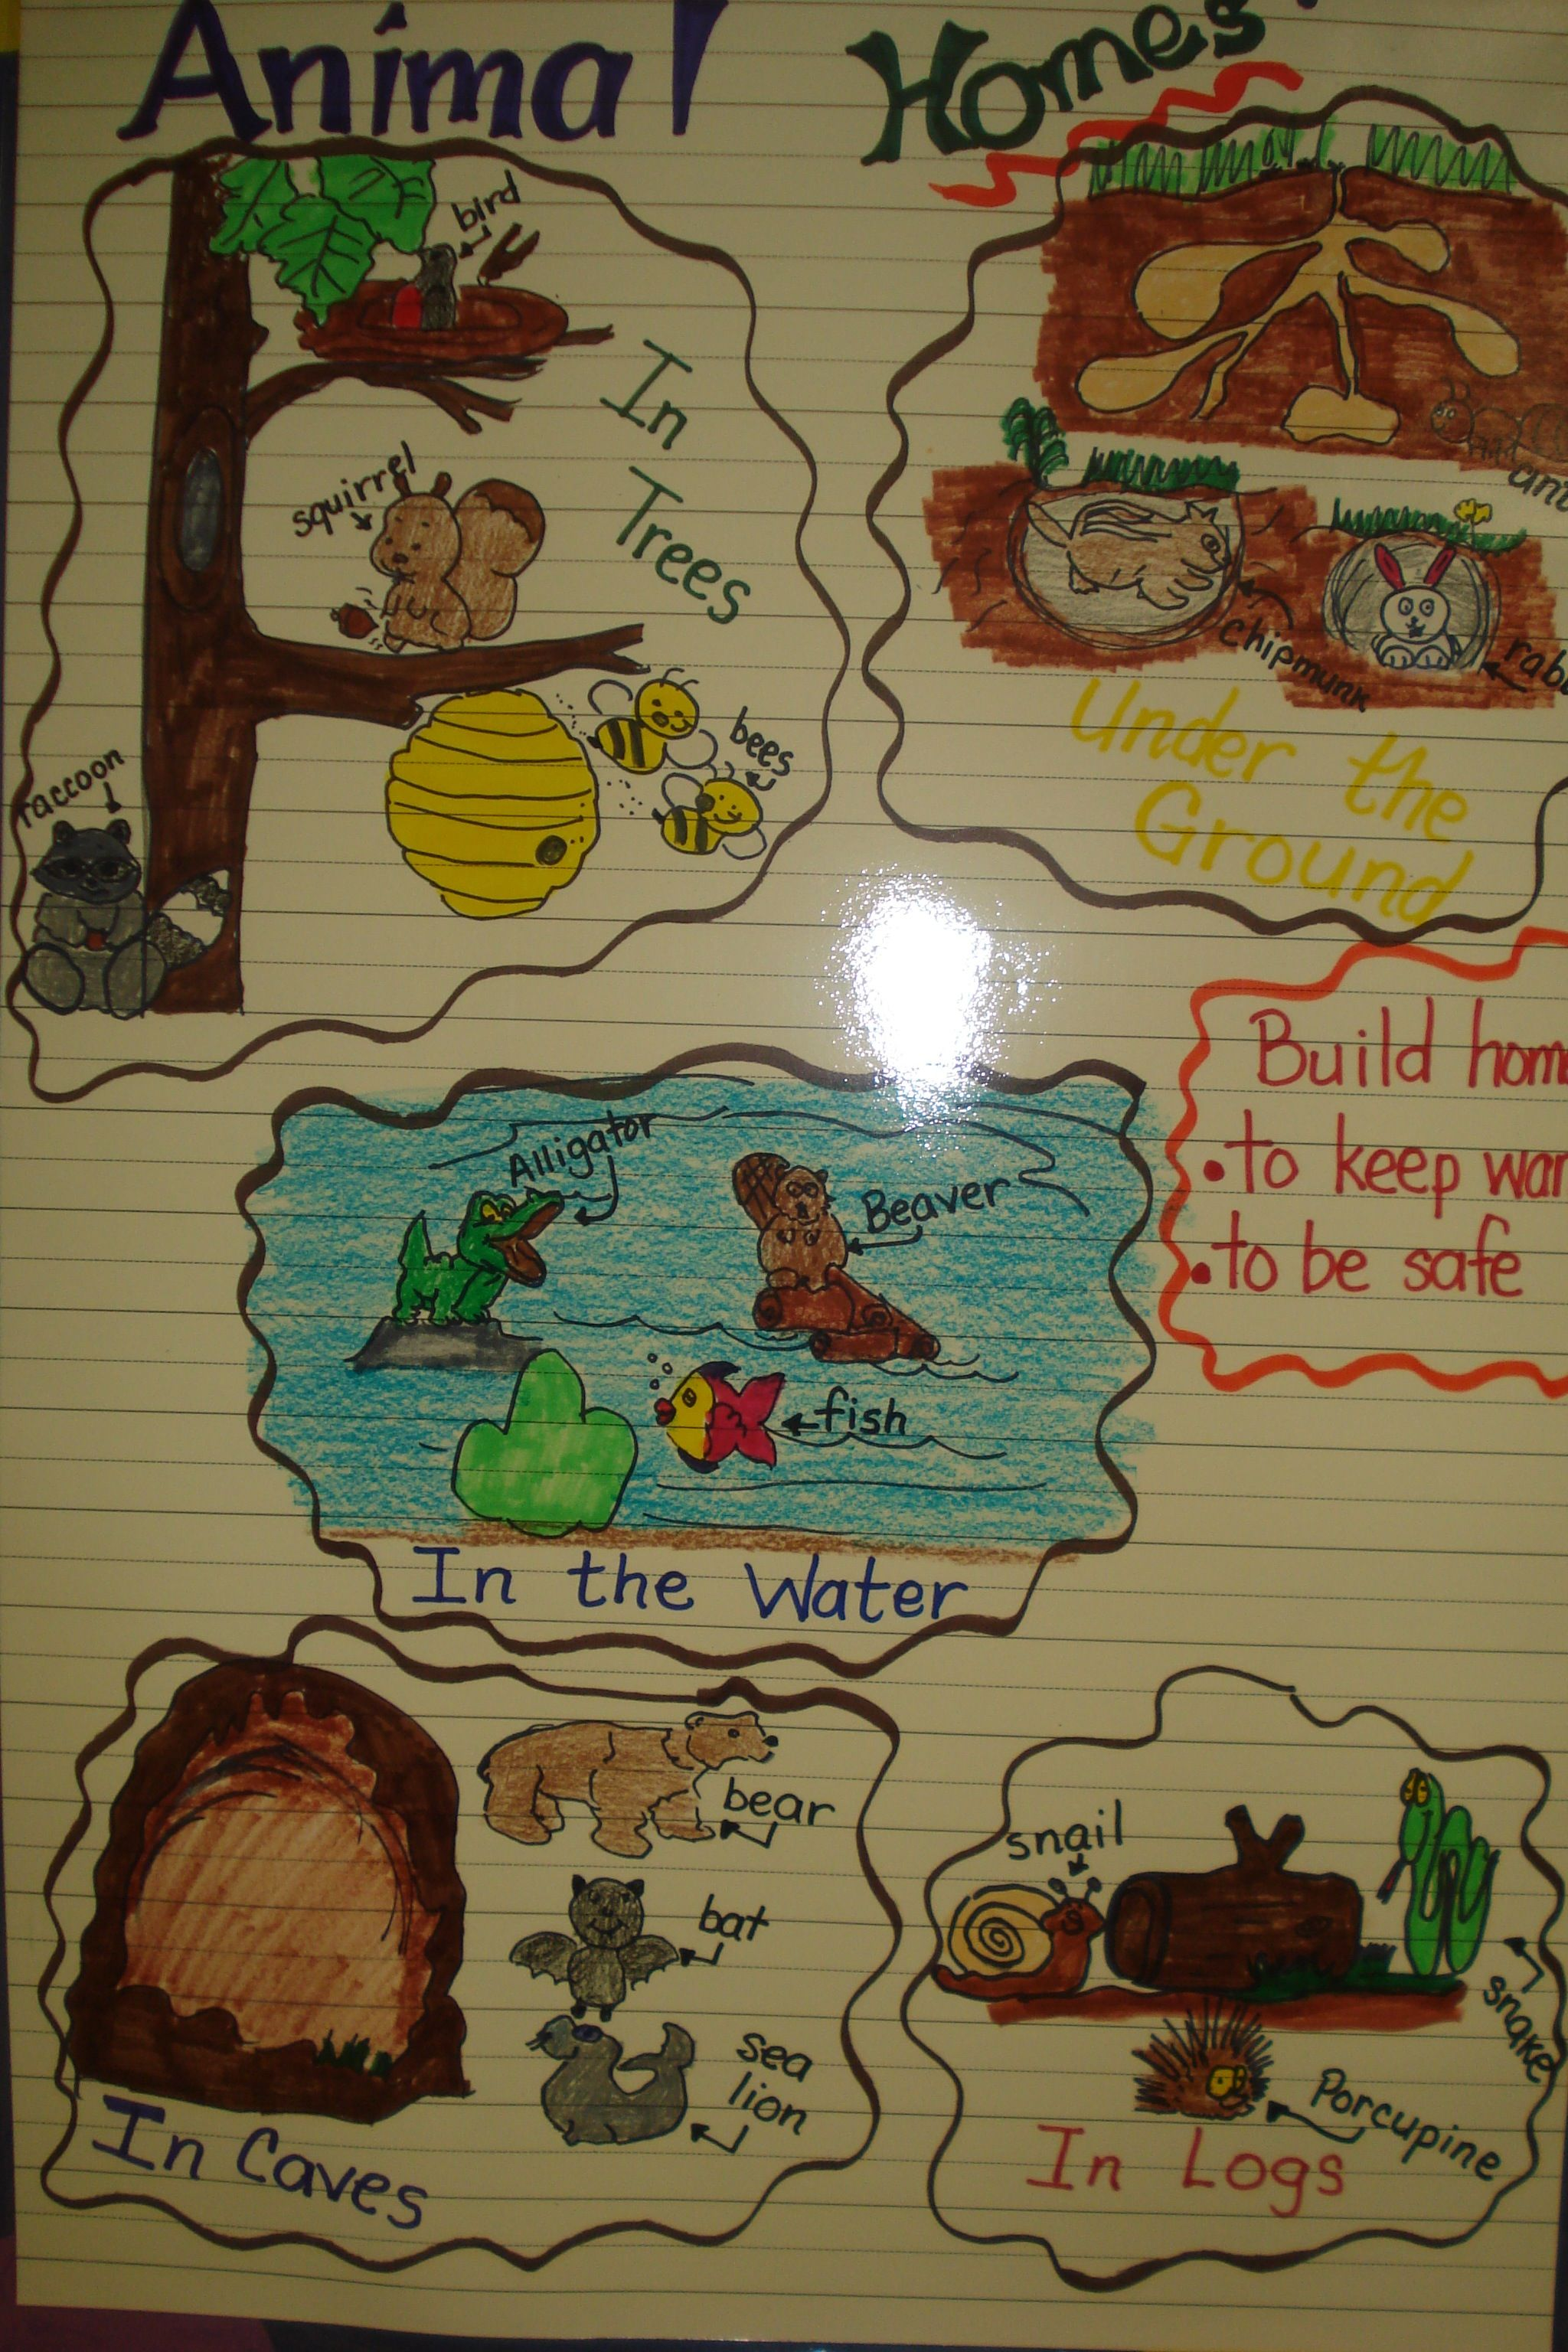 Animal Homes Chart At Thebilingualcafe Created By Hildelisa Diaz